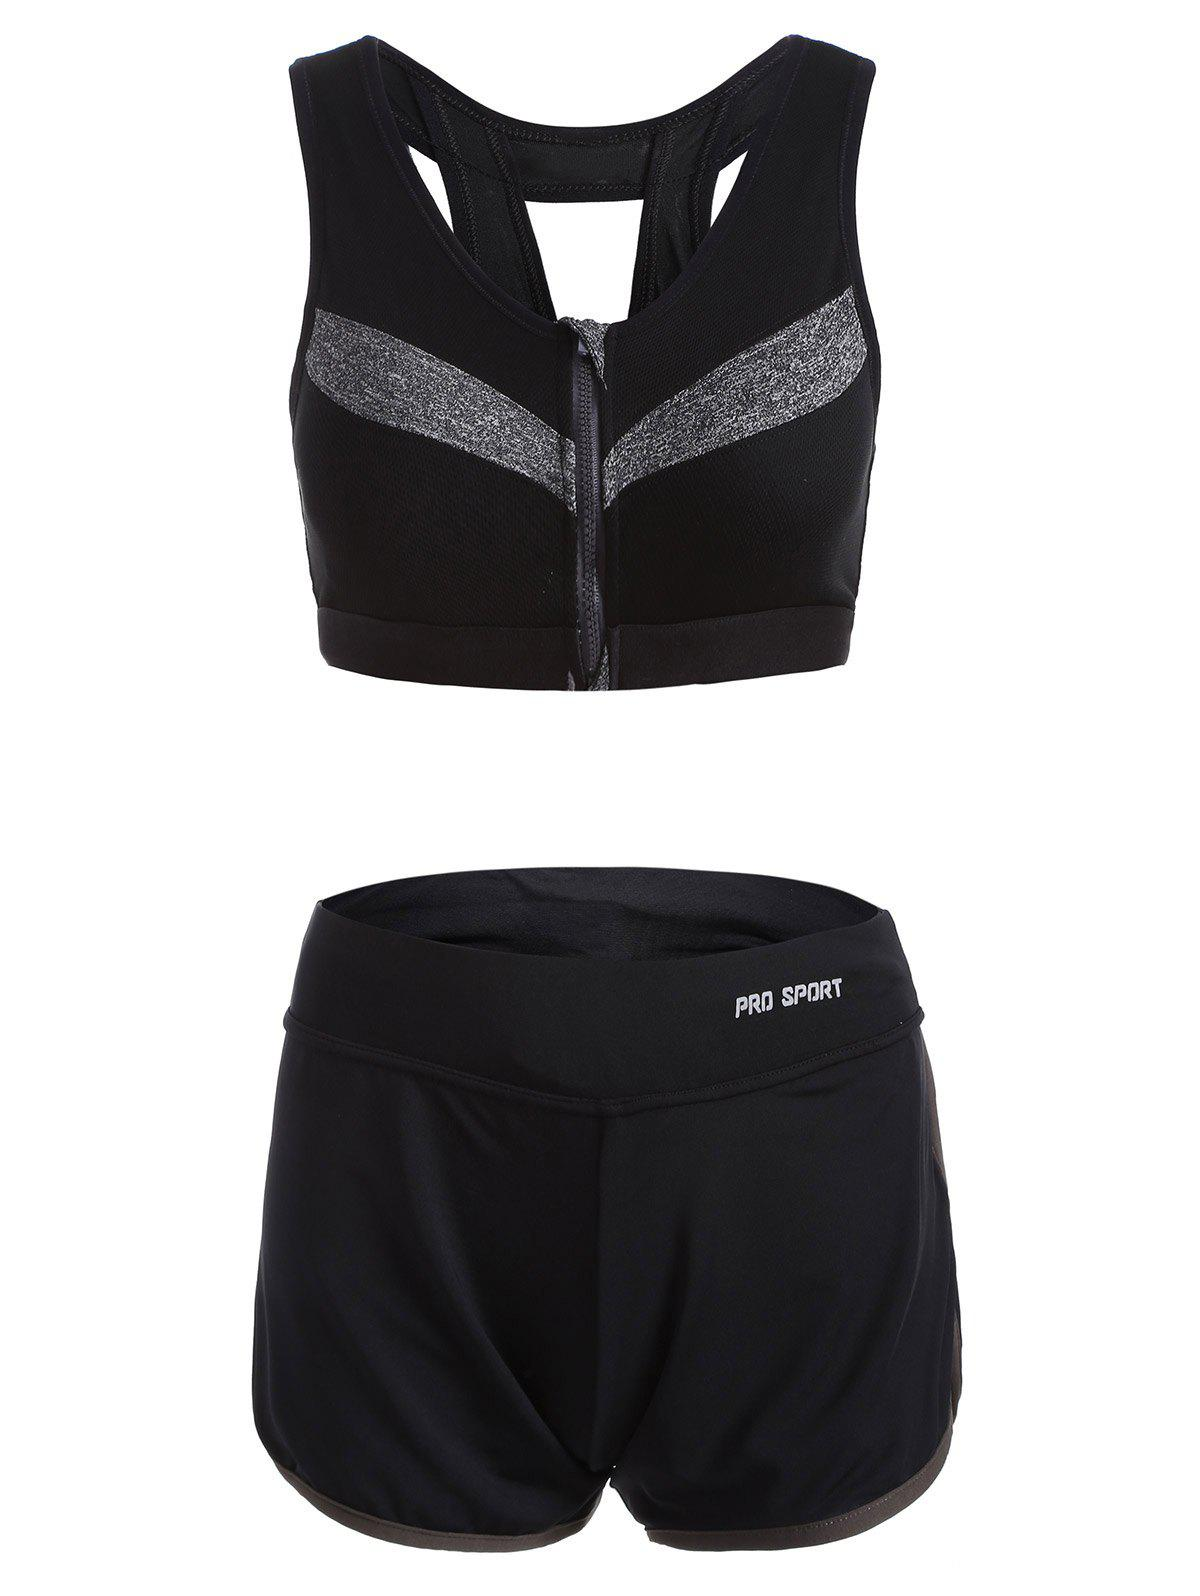 Shop Zipper Design Patchwork Sporty Bra and Gym Shorts